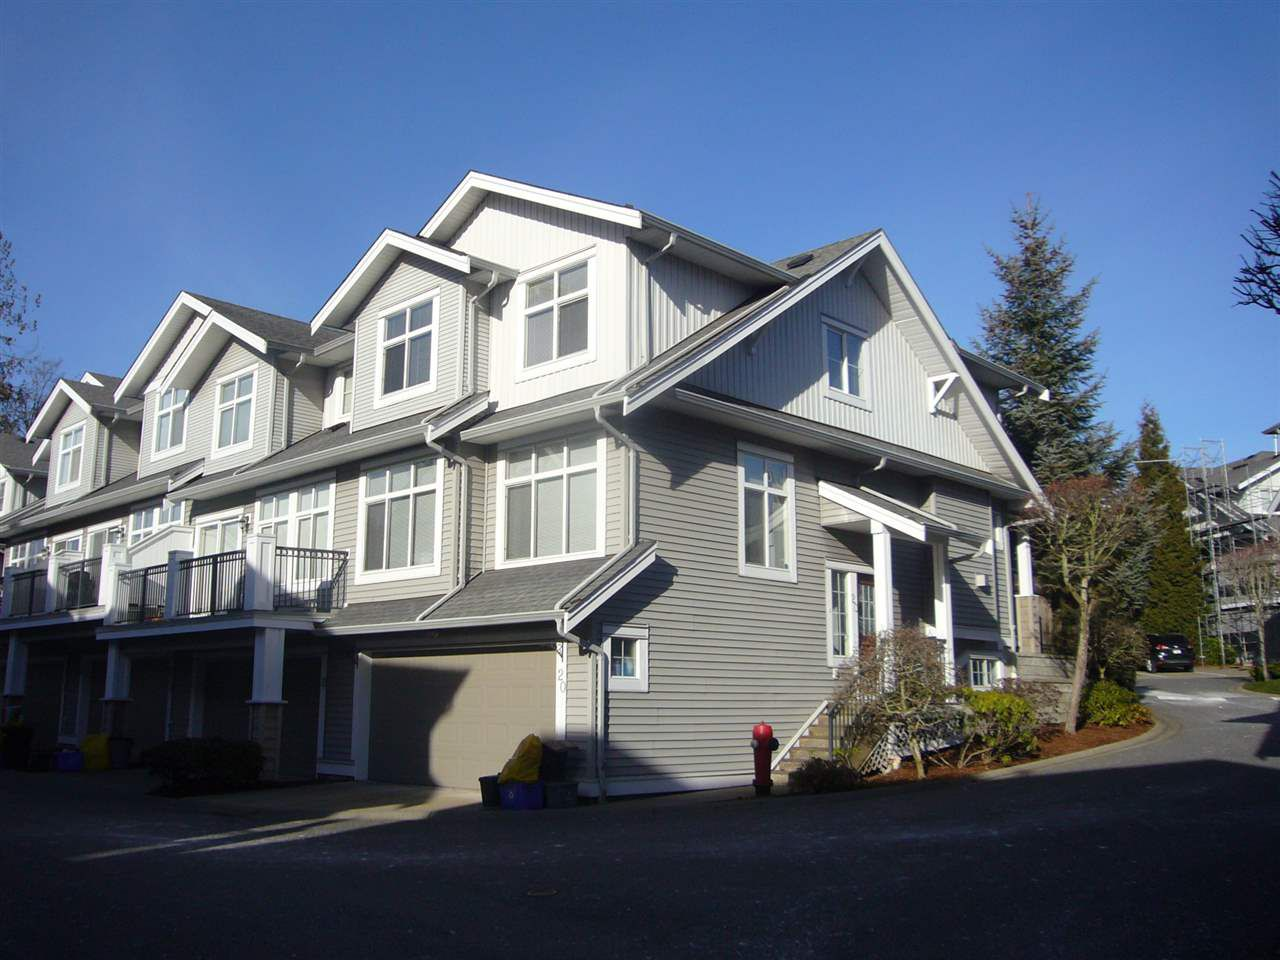 """Main Photo: 20 20449 66 Avenue in Langley: Willoughby Heights Townhouse for sale in """"Natures Landing"""" : MLS®# R2335937"""